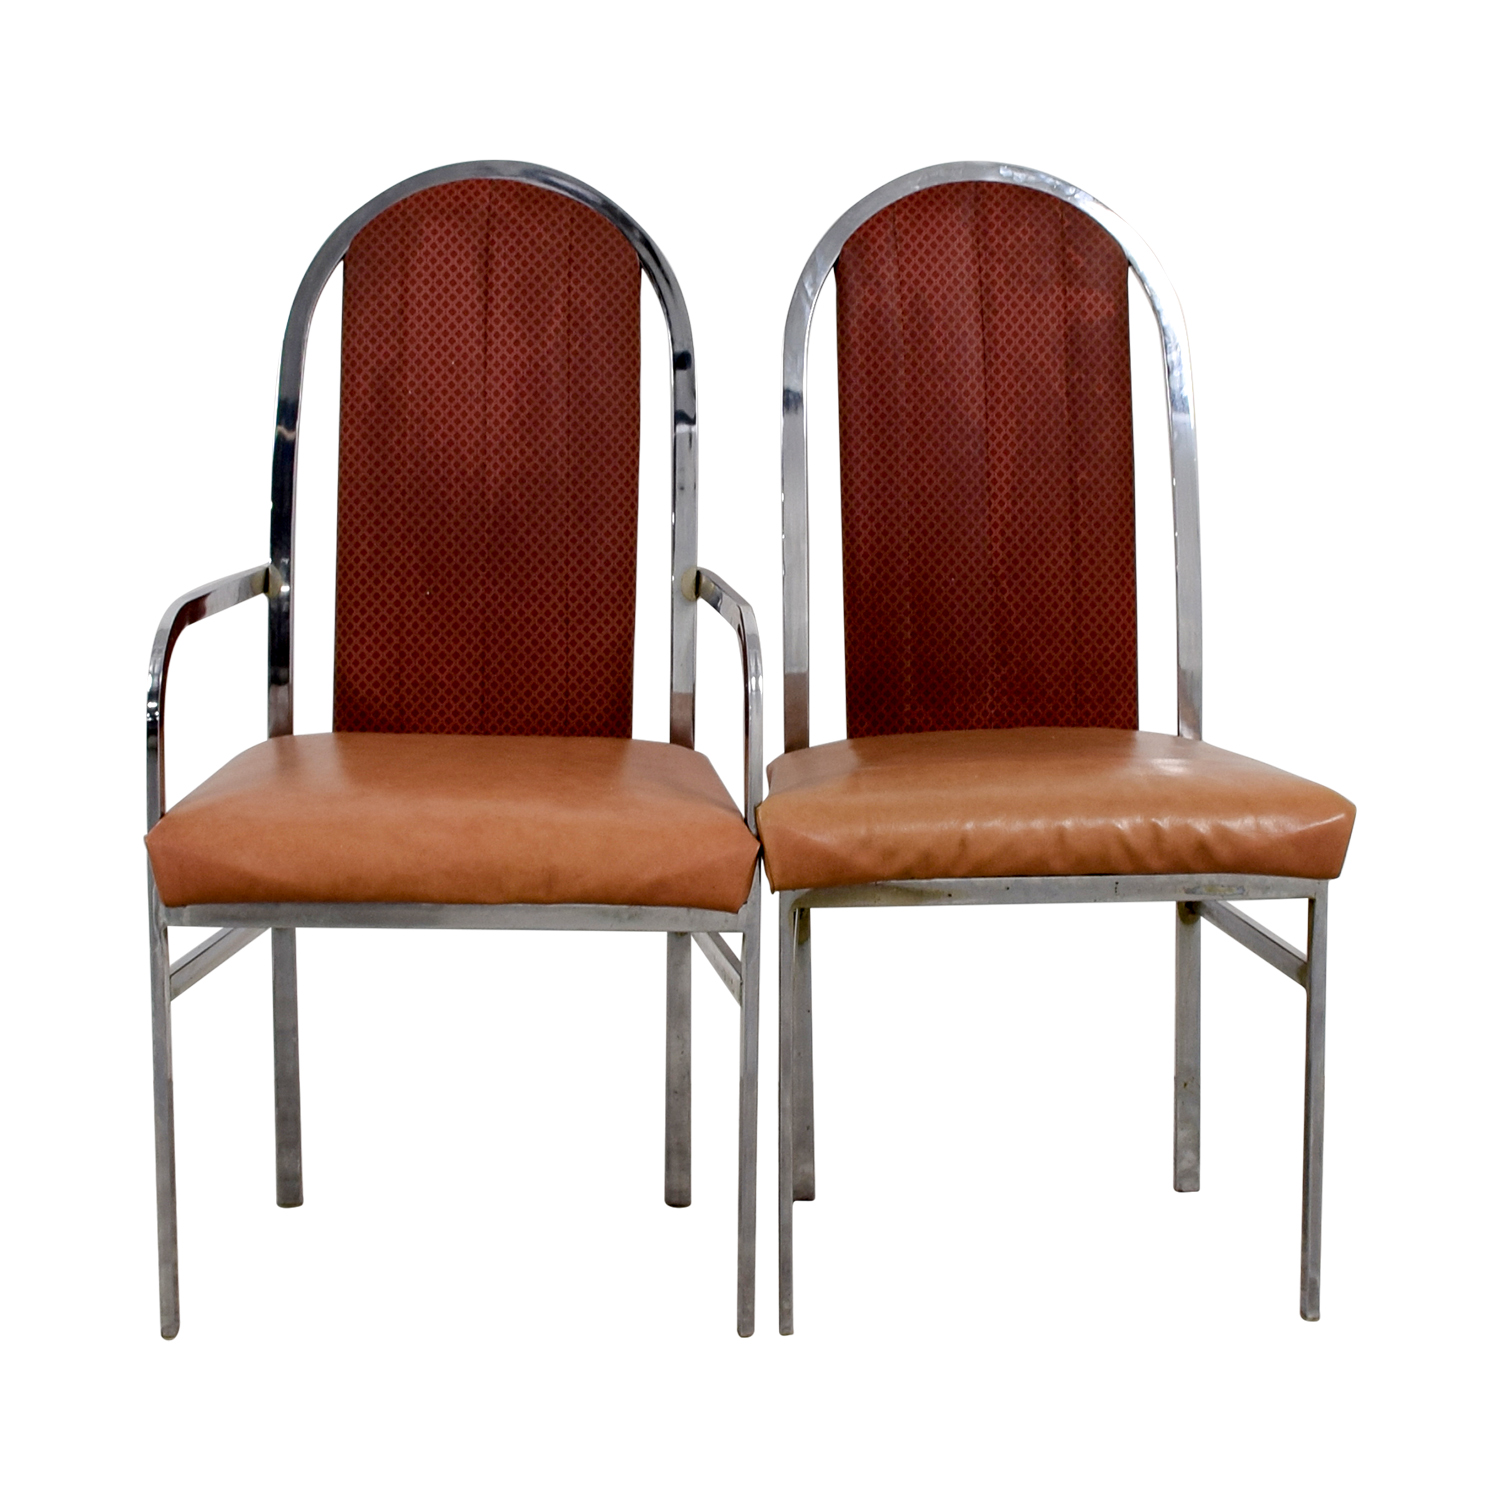 Awesome 90 Off Peach Leather And Chrome Dining Chairs Chairs Camellatalisay Diy Chair Ideas Camellatalisaycom